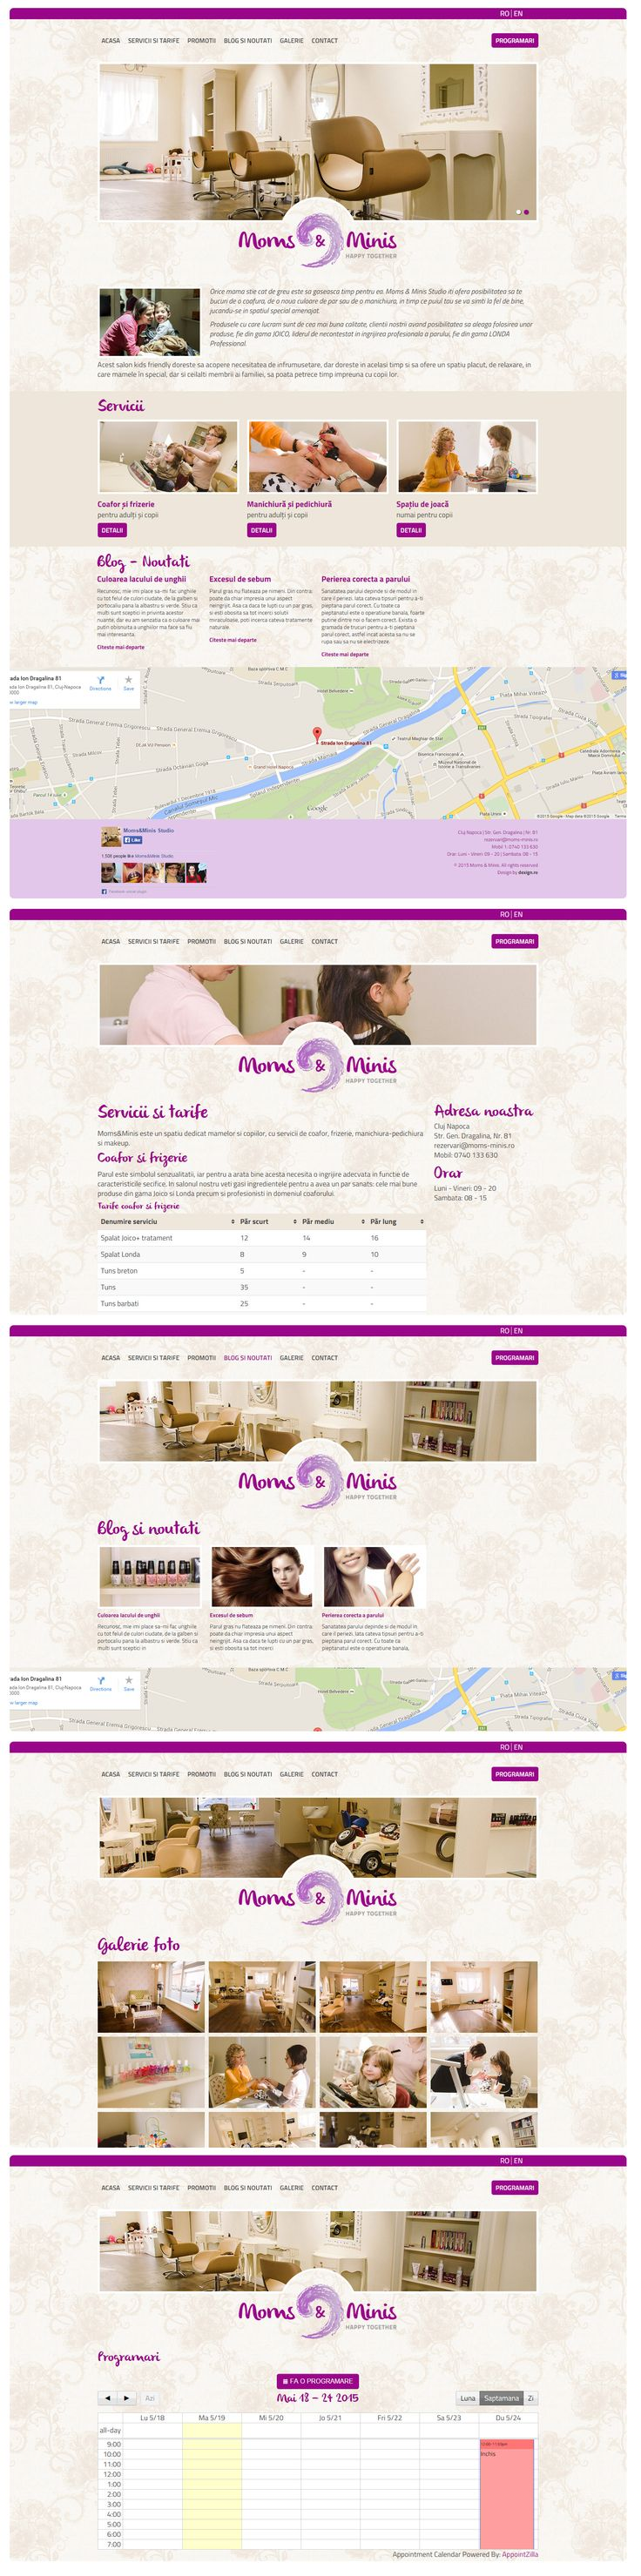 Webdesign for Moms & Minis